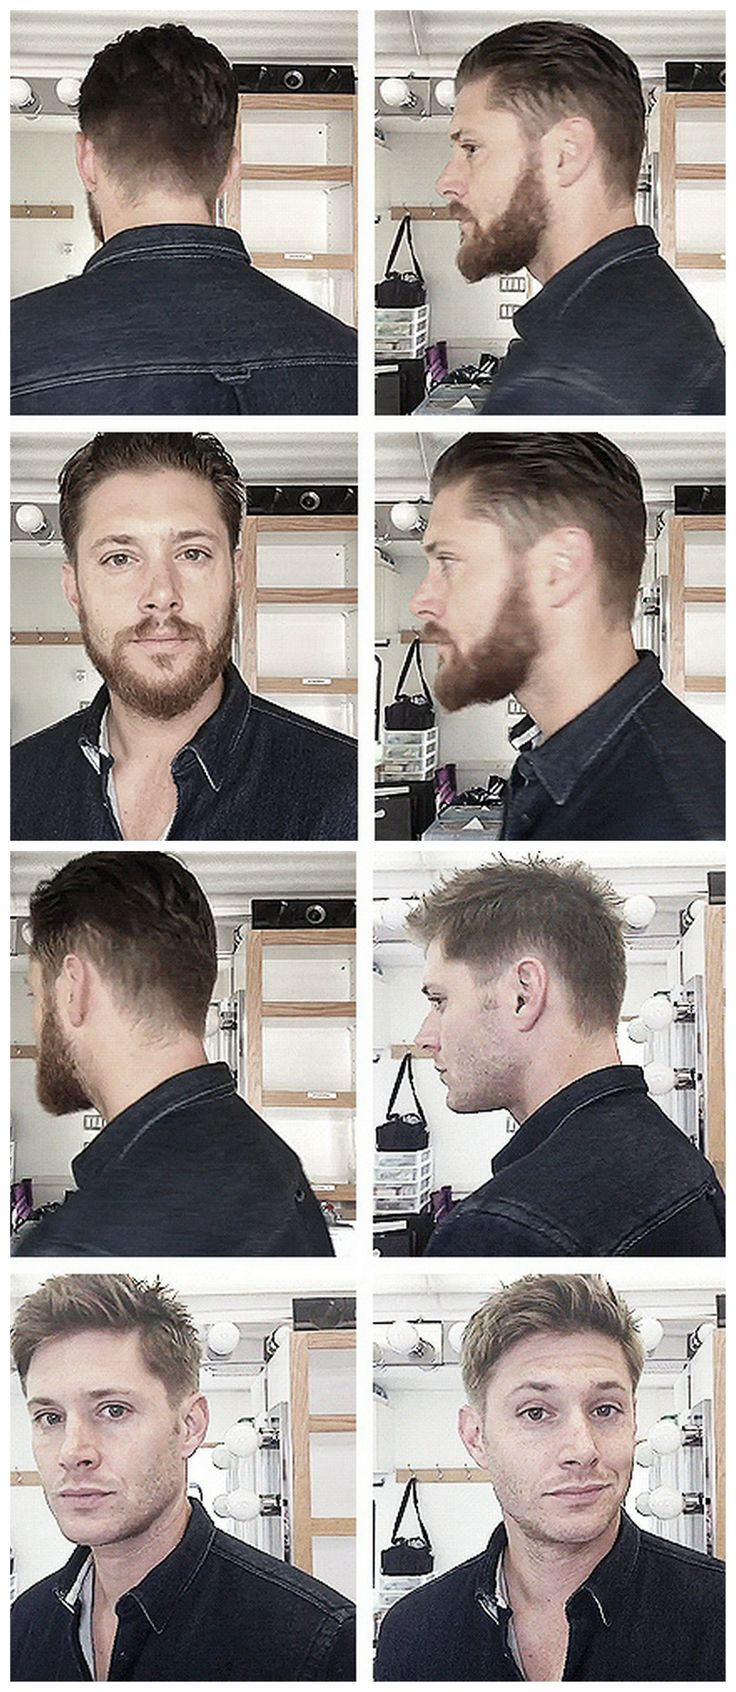 [gifset] So what kind of hiatus beard do you think we'll get his year? #JensenAckles